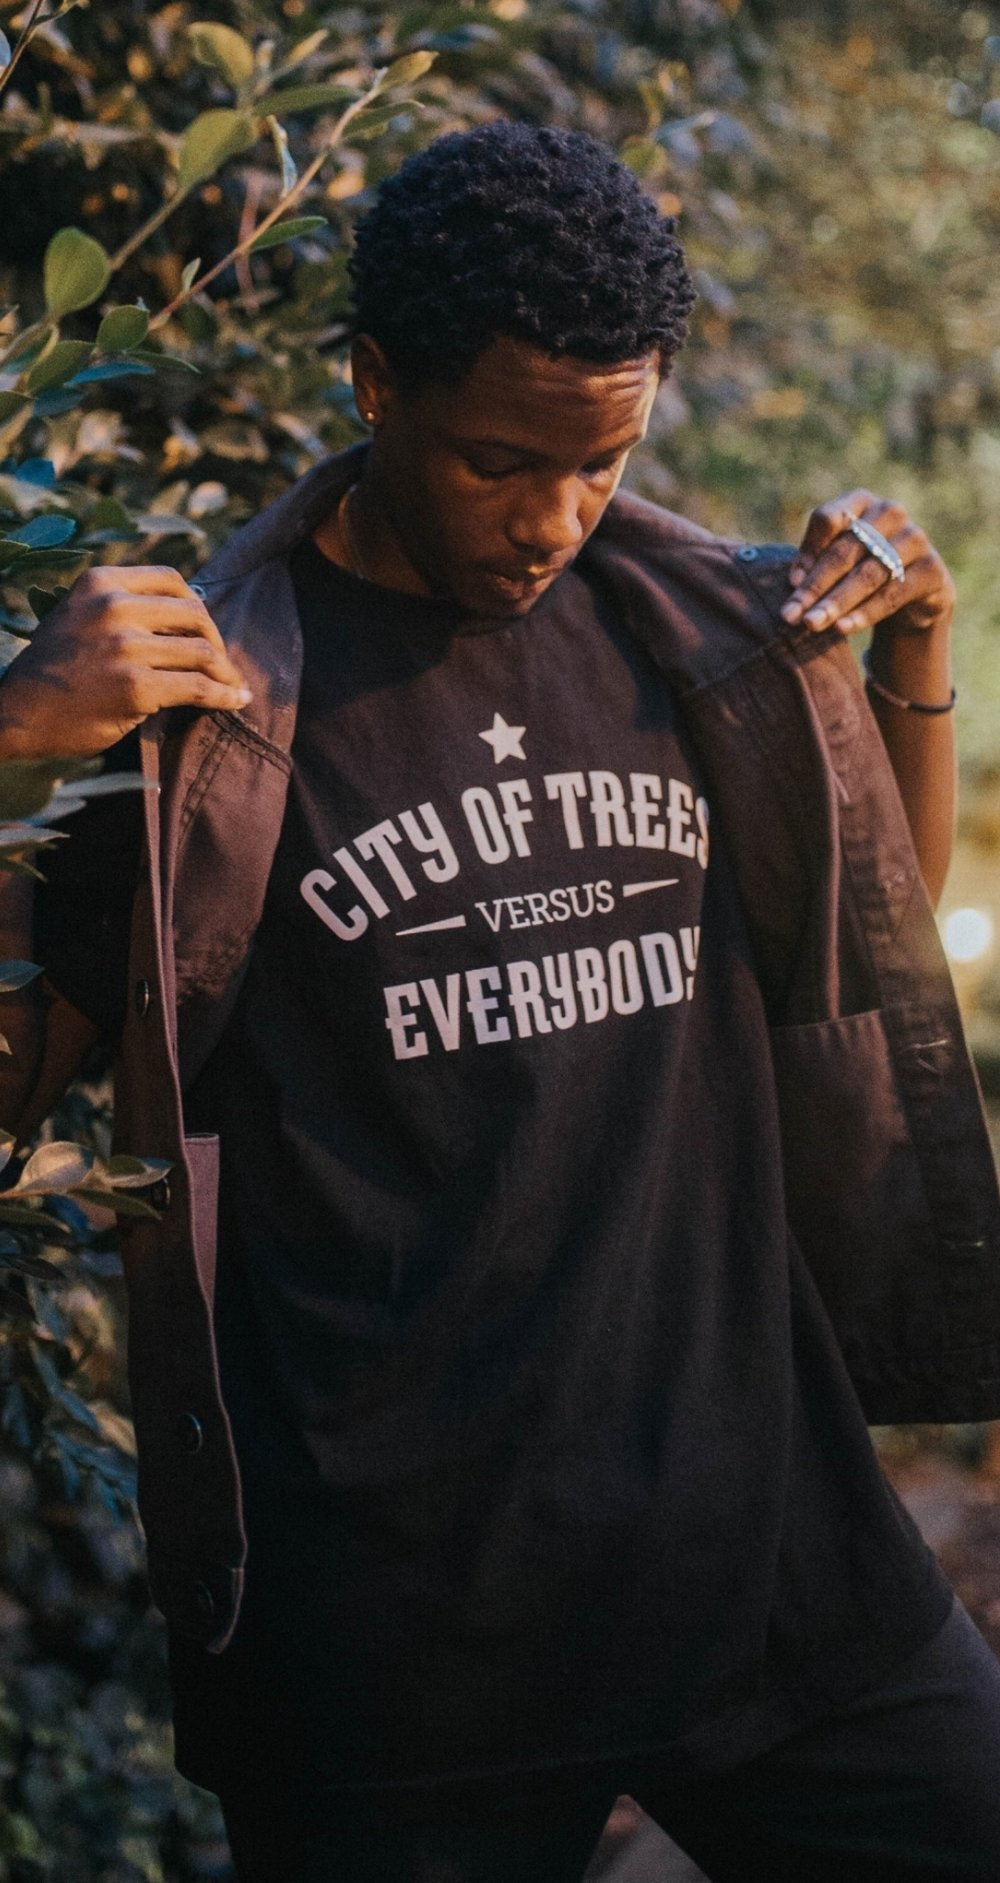 City of Trees Versus Everybody                                     Black T-Shirt